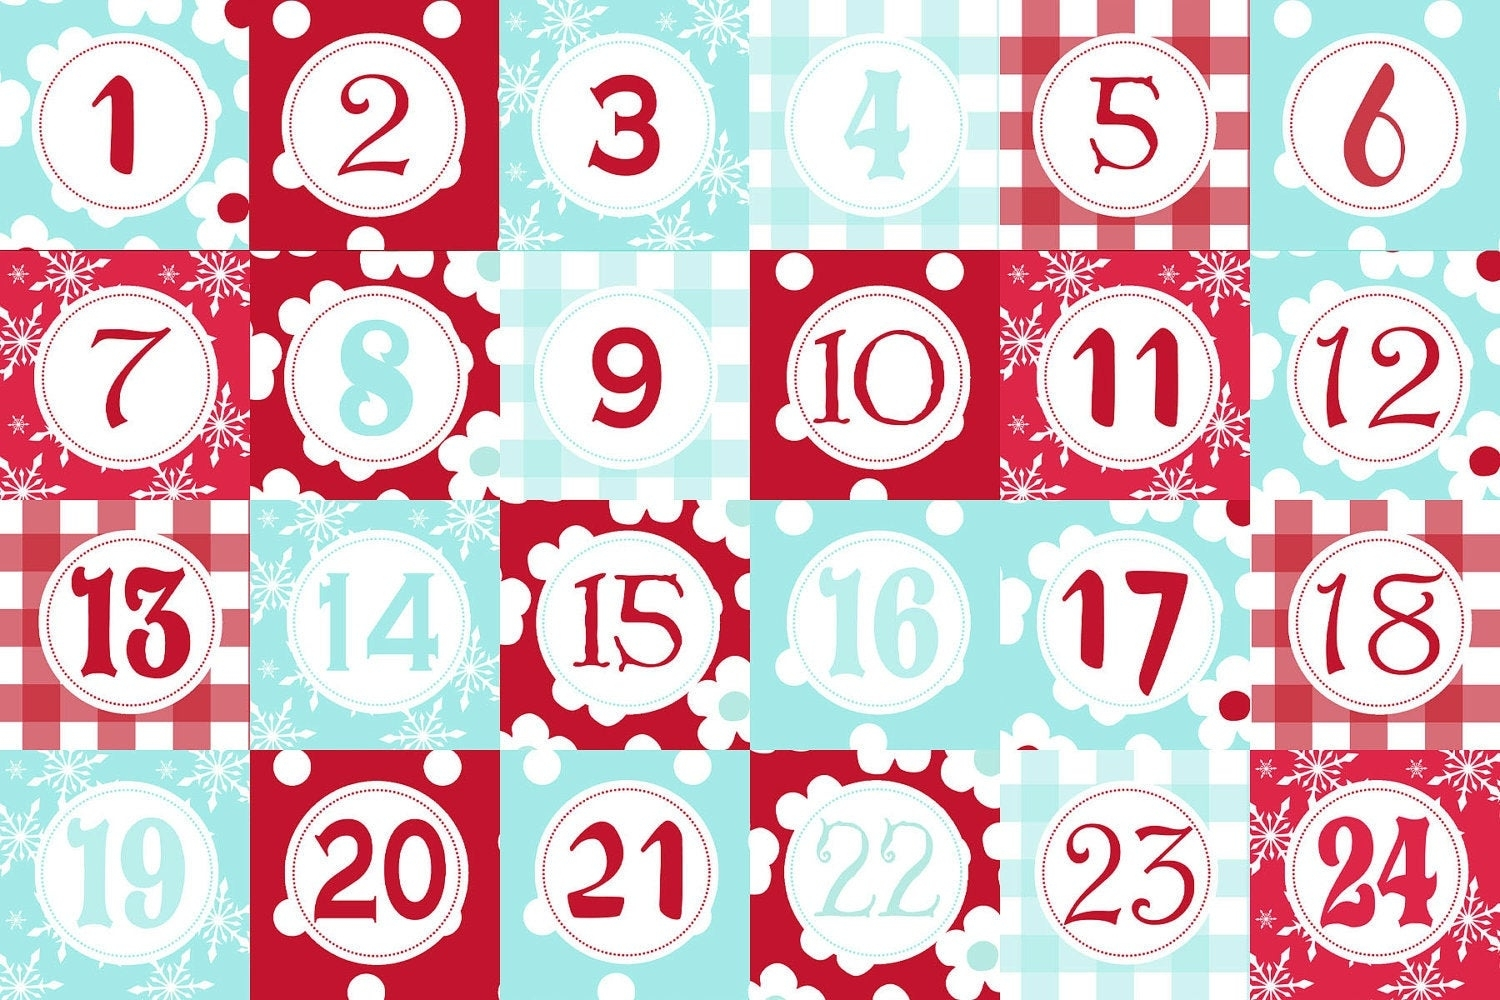 Advent Calendar Templates regarding Advent Calendar Printable Numbers Calendar Template